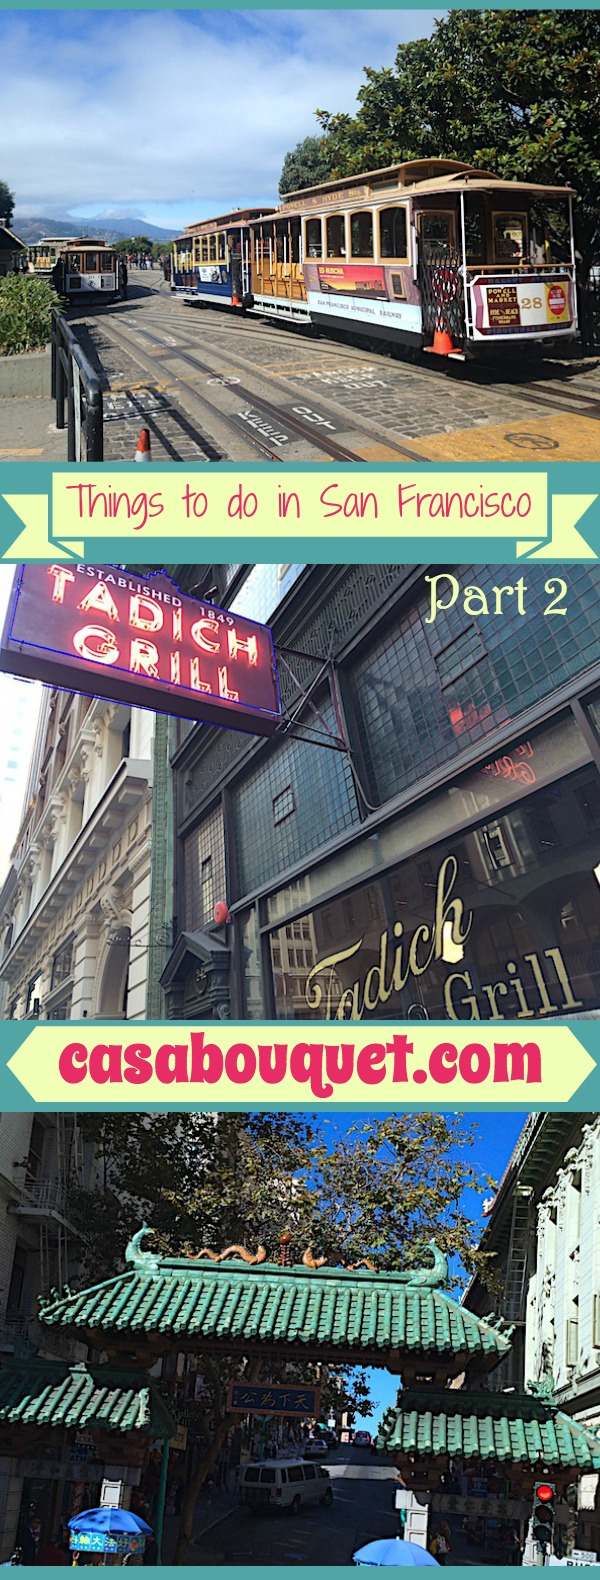 Things to do in San Francisco include Buena Vista Café, Tadich Grill, Fisherman's Wharf, and Chinatown.